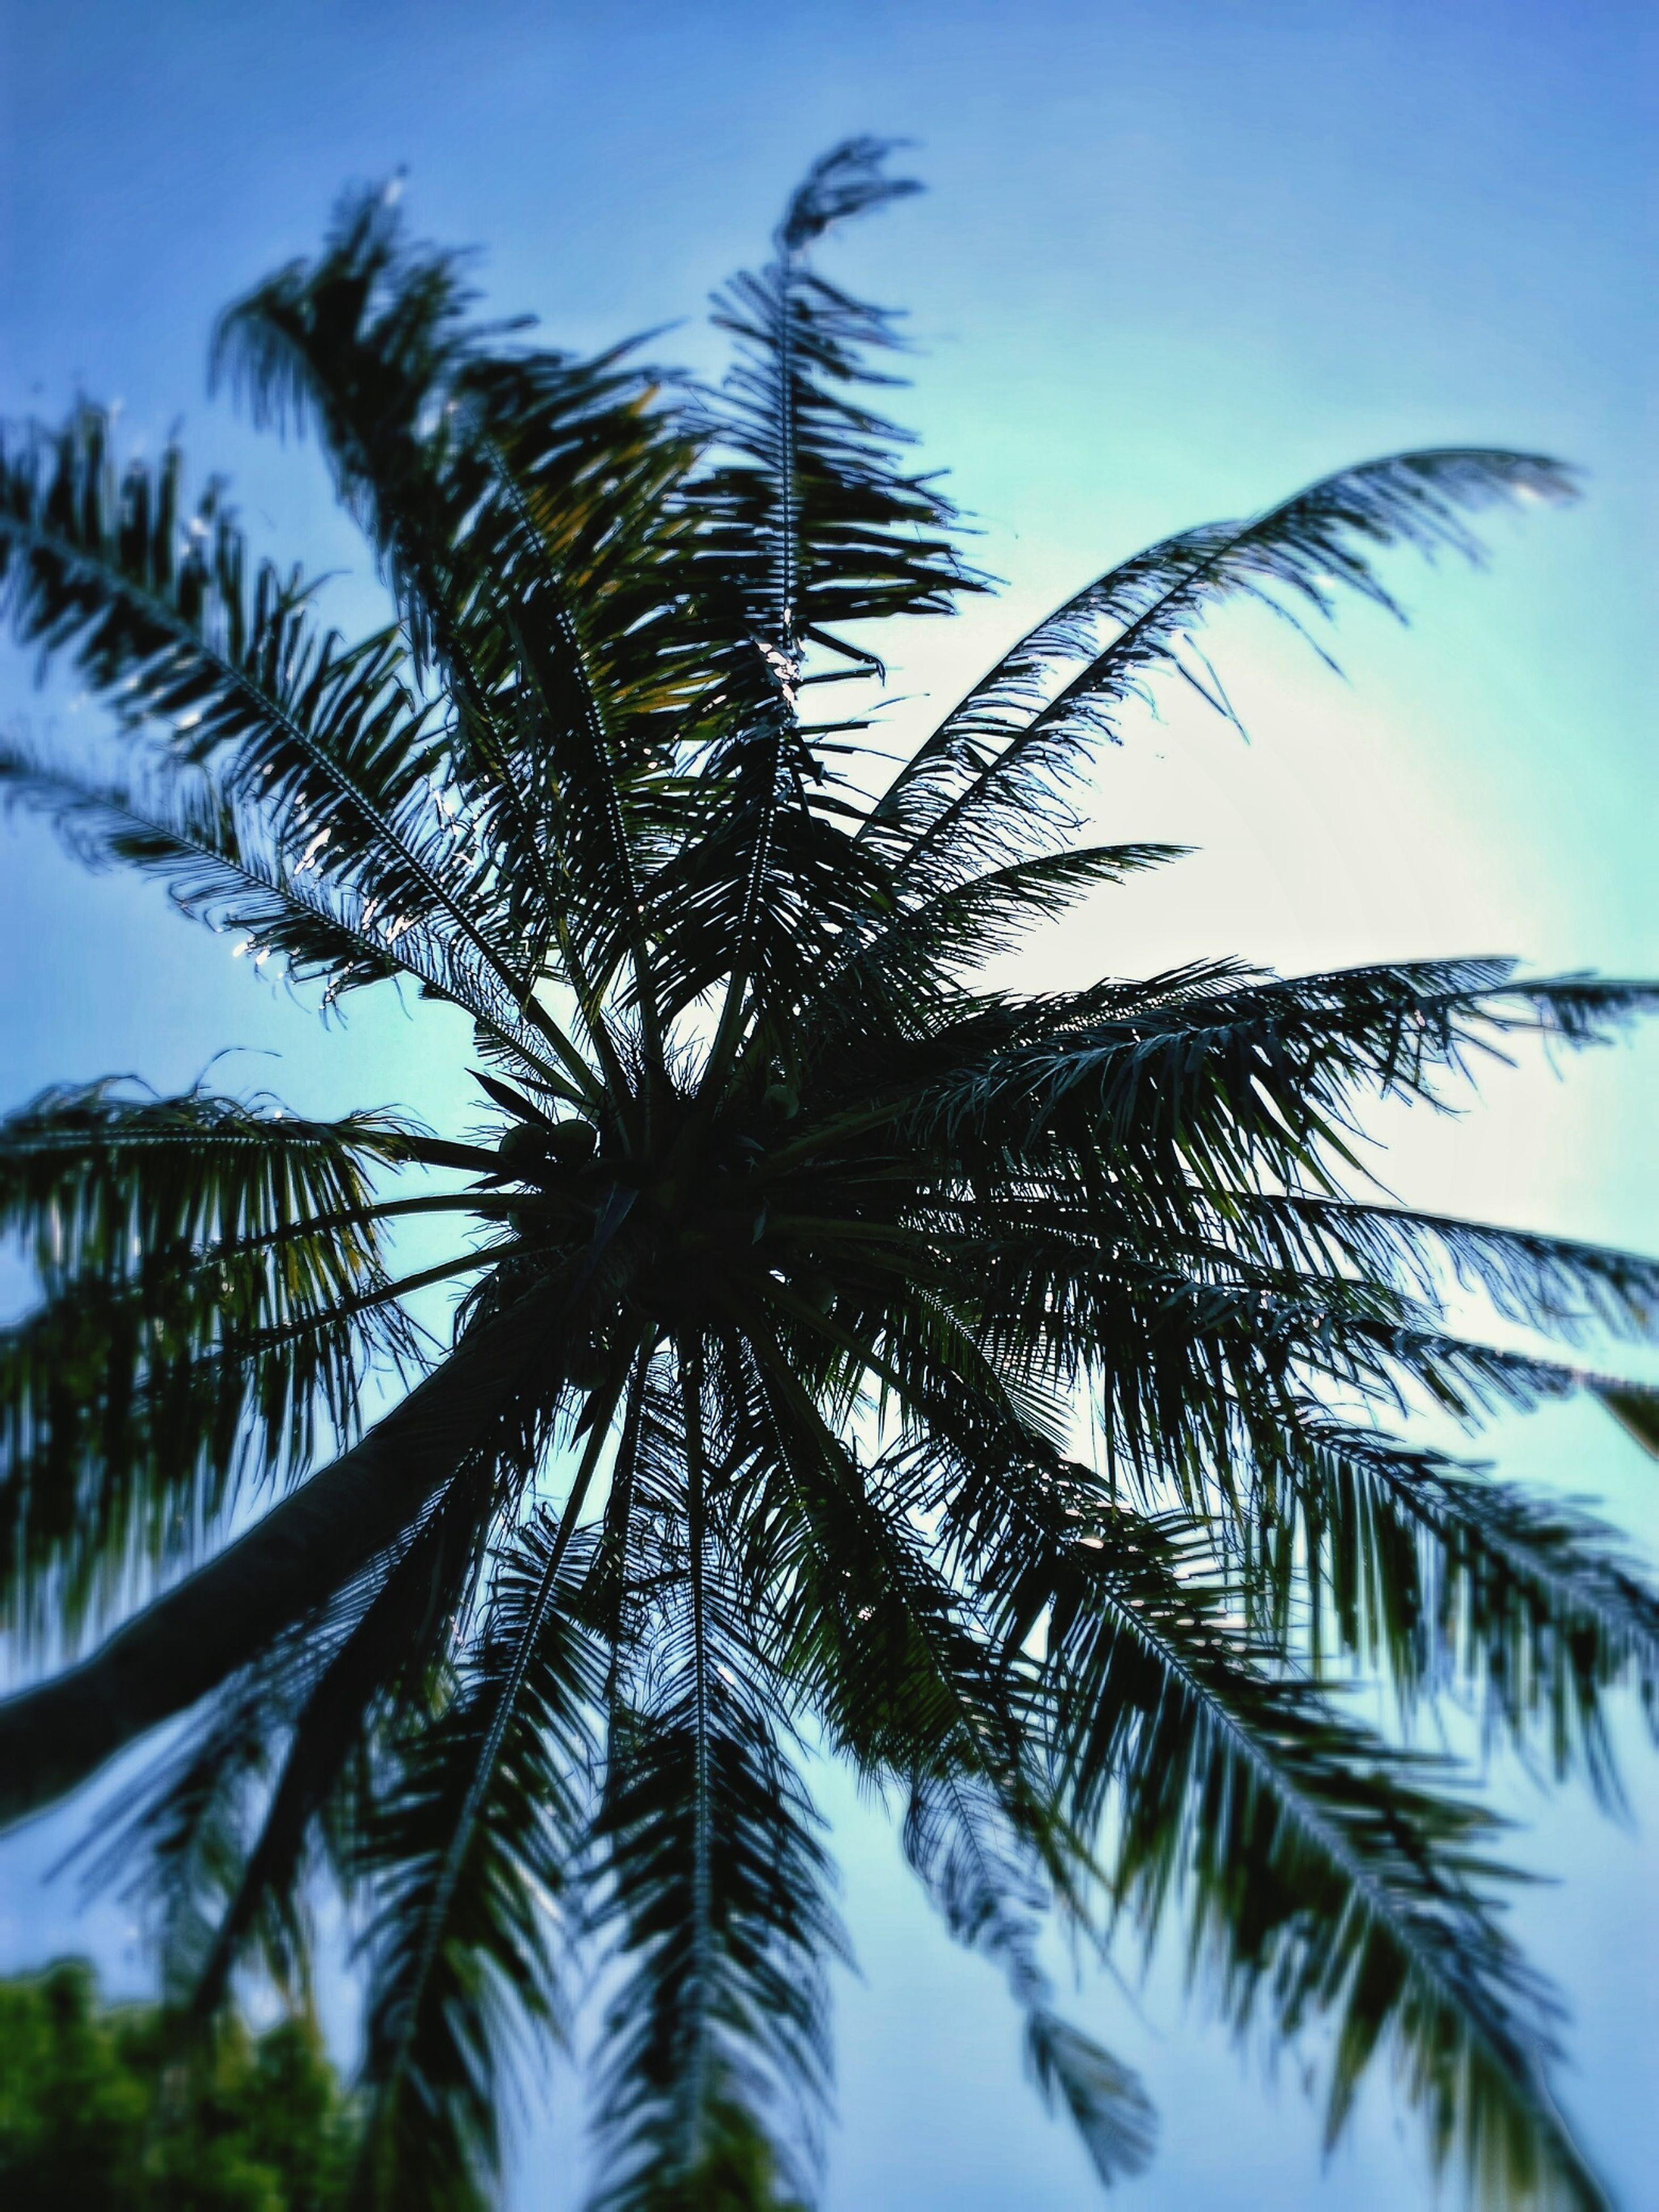 palm tree, low angle view, tree, growth, blue, palm leaf, tranquility, clear sky, sky, nature, beauty in nature, coconut palm tree, scenics, tropical tree, tranquil scene, tree trunk, day, palm frond, outdoors, tropical climate